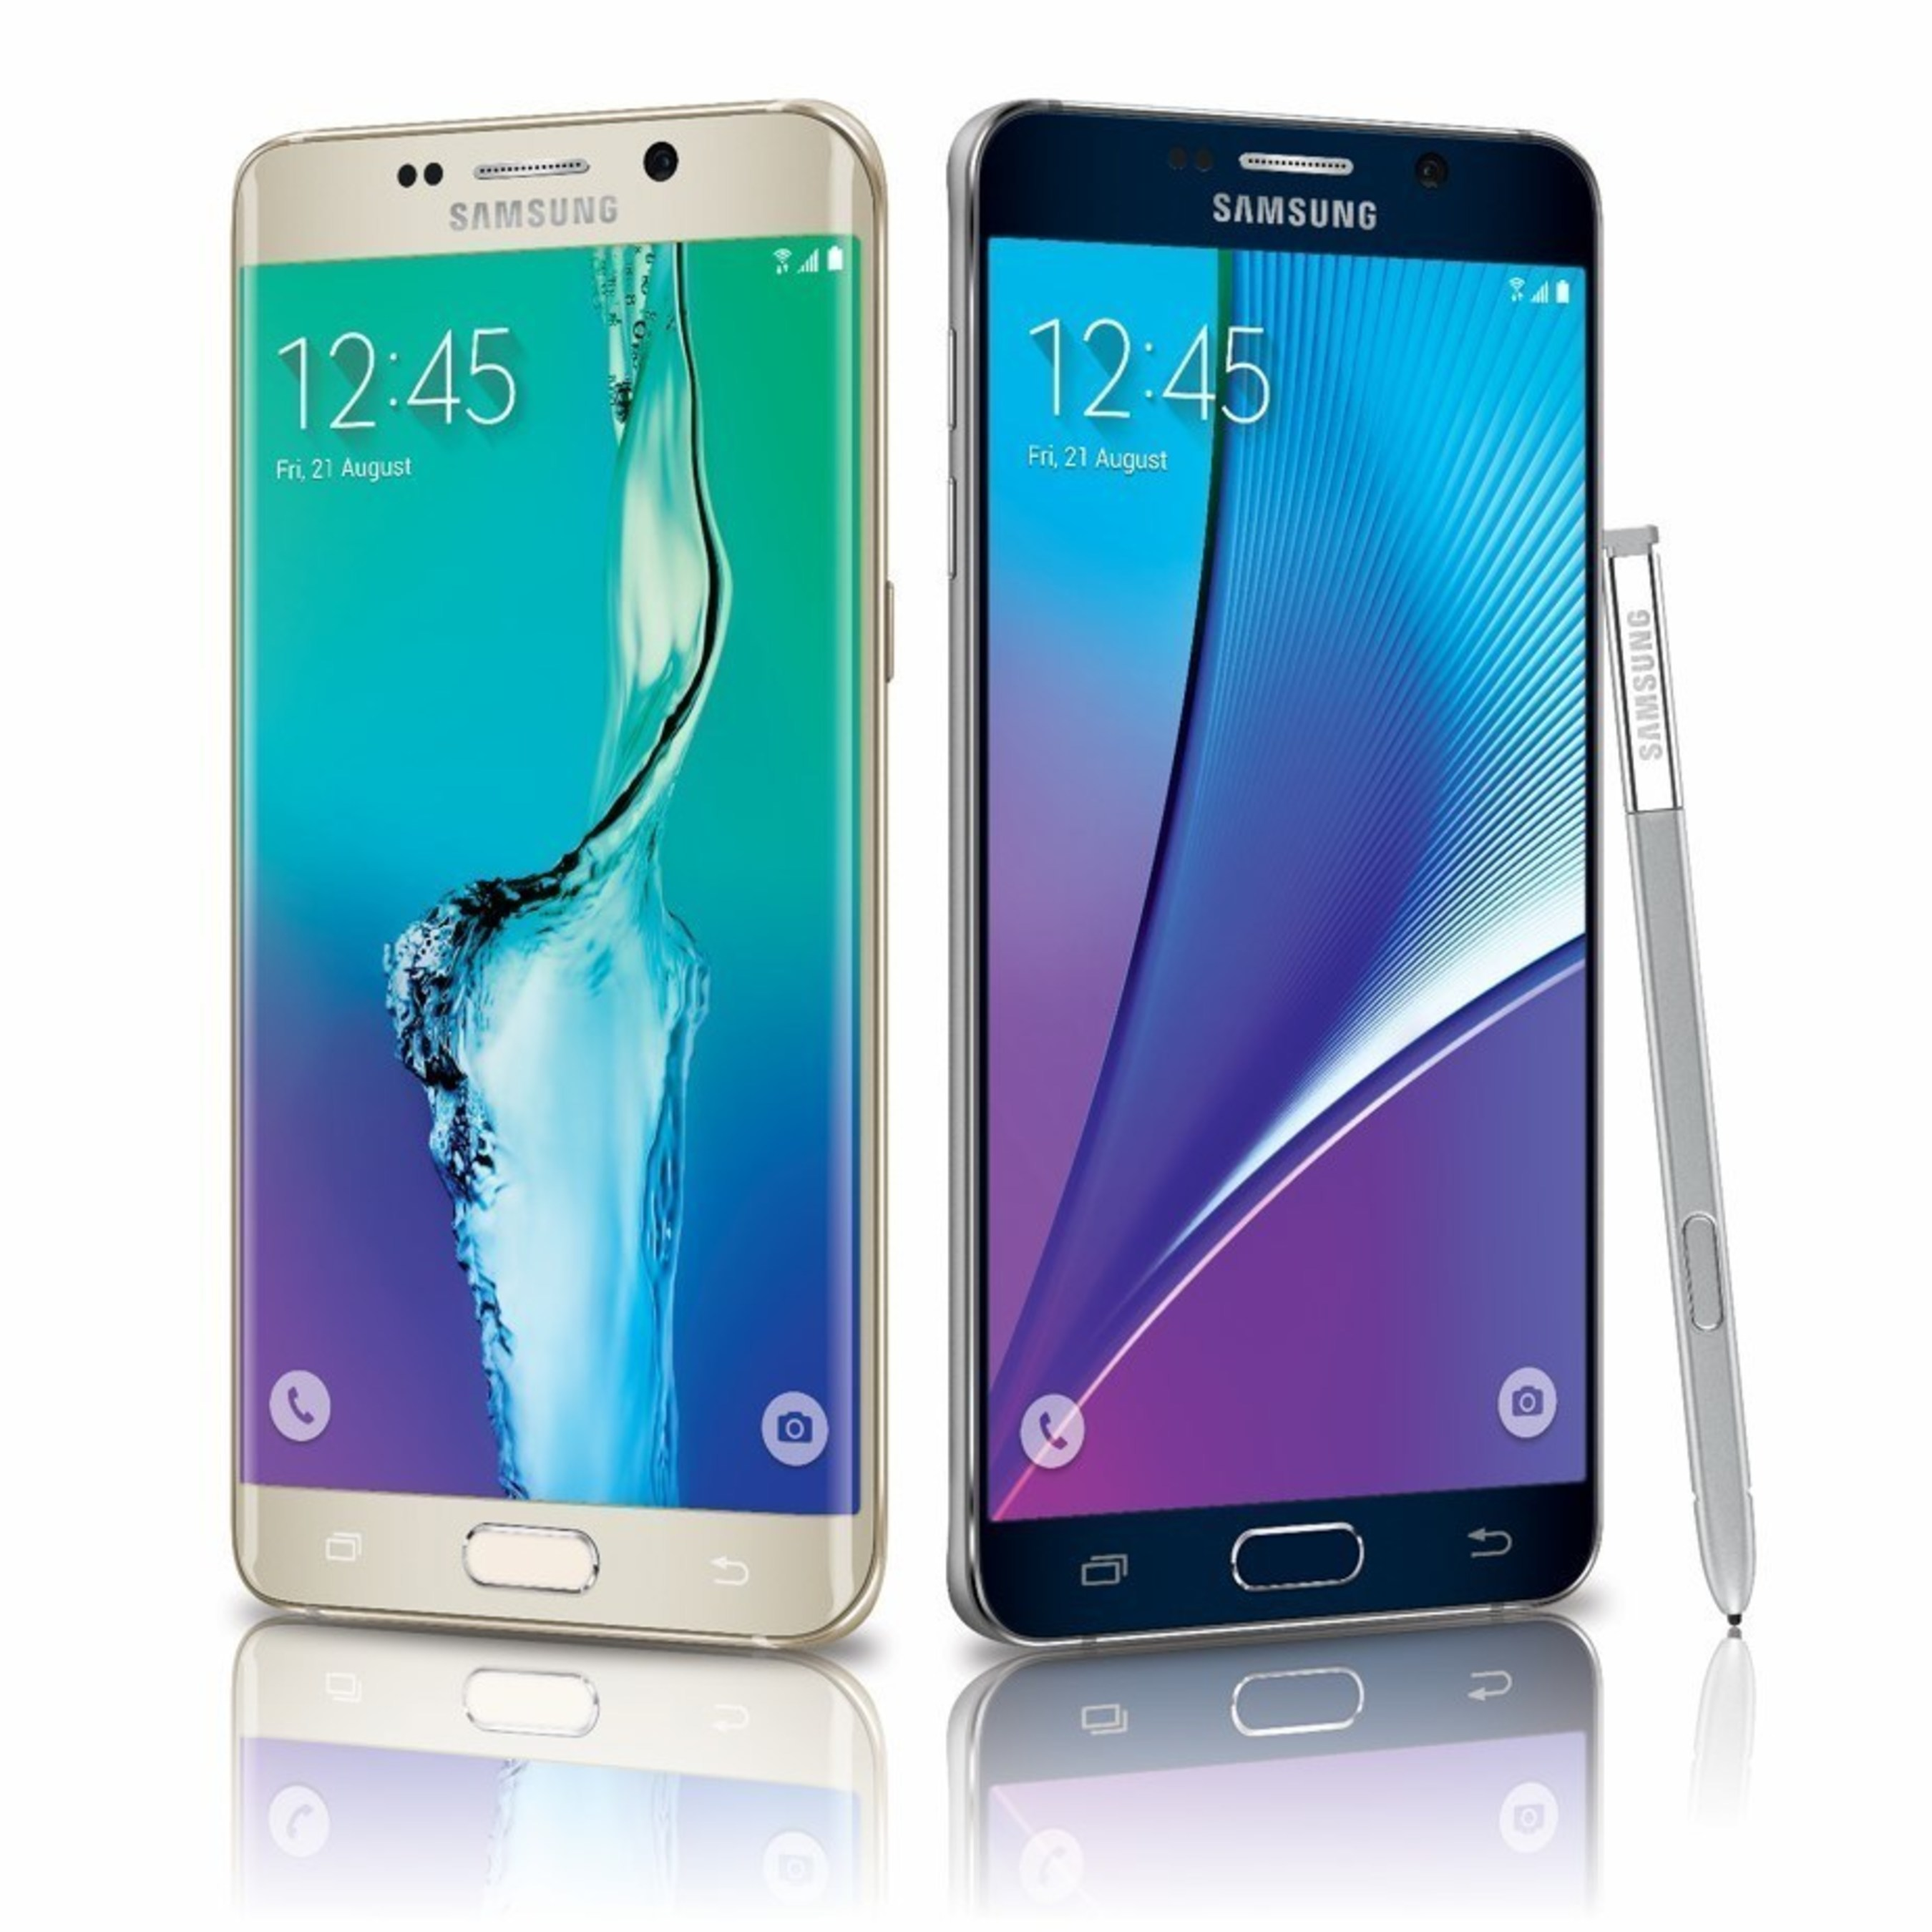 Galaxy S' 6 edge+ And Galaxy Note5 Coming Soon On C Spire's 'Born Where You Live' 4G LTE+ Network